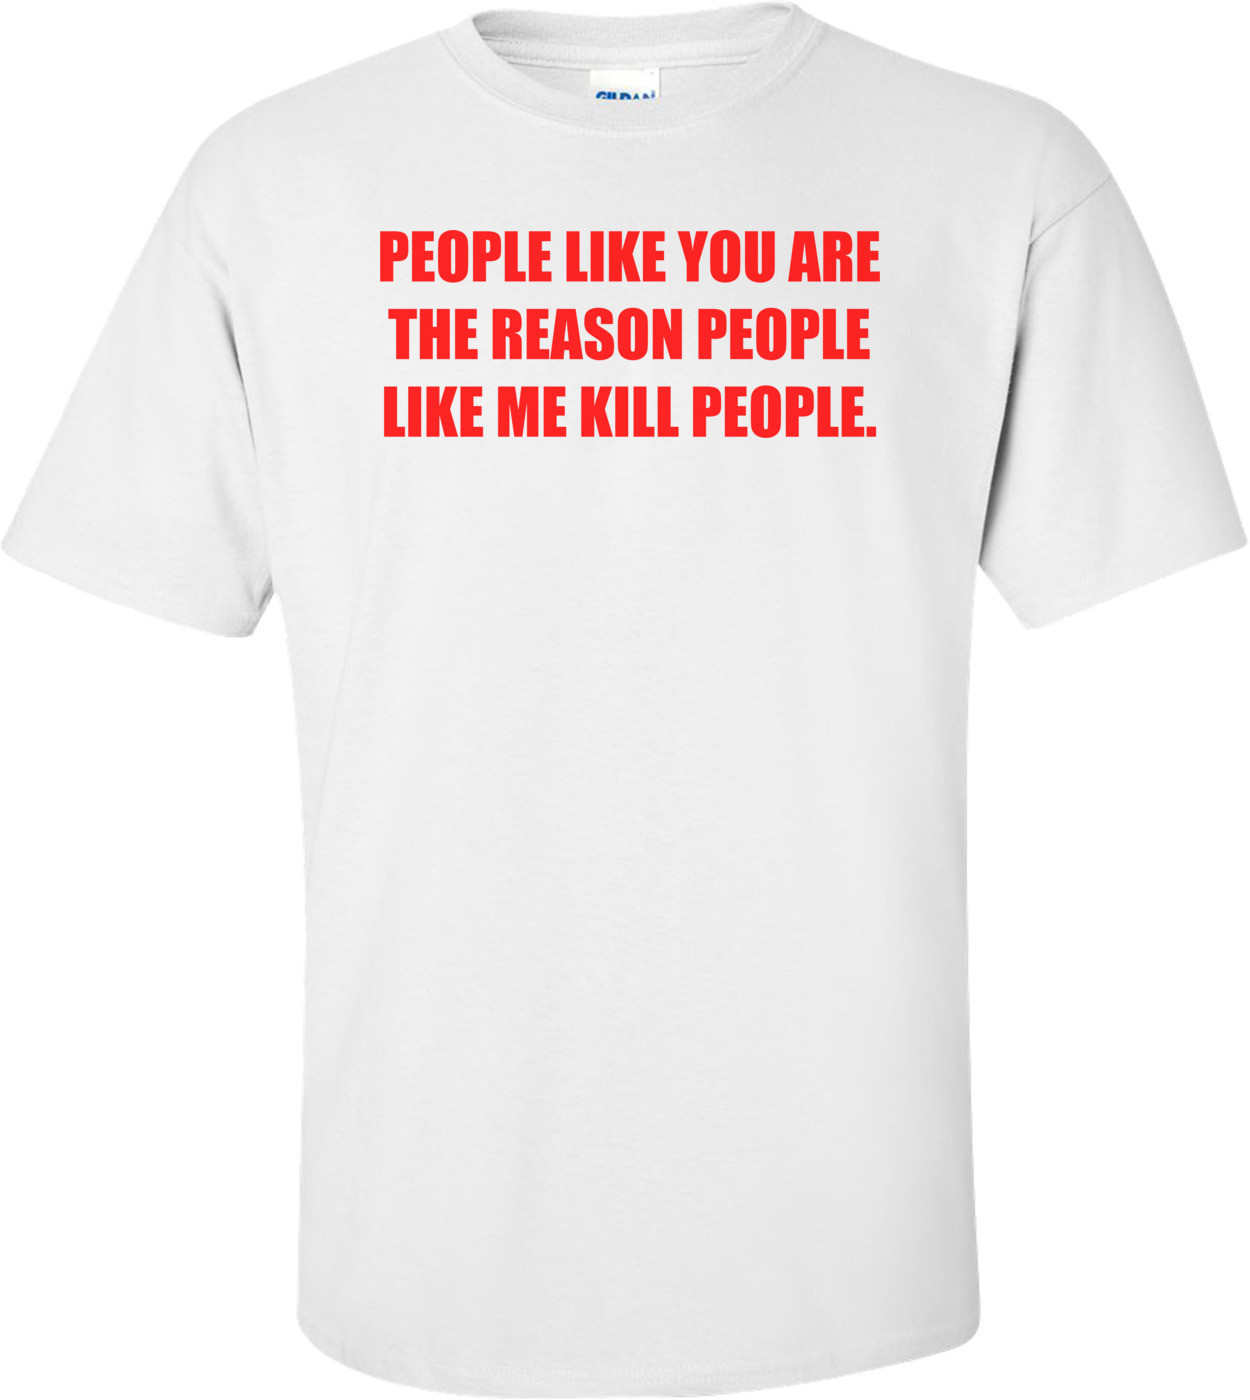 PEOPLE LIKE YOU ARE THE REASON PEOPLE LIKE ME KILL PEOPLE. Shirt